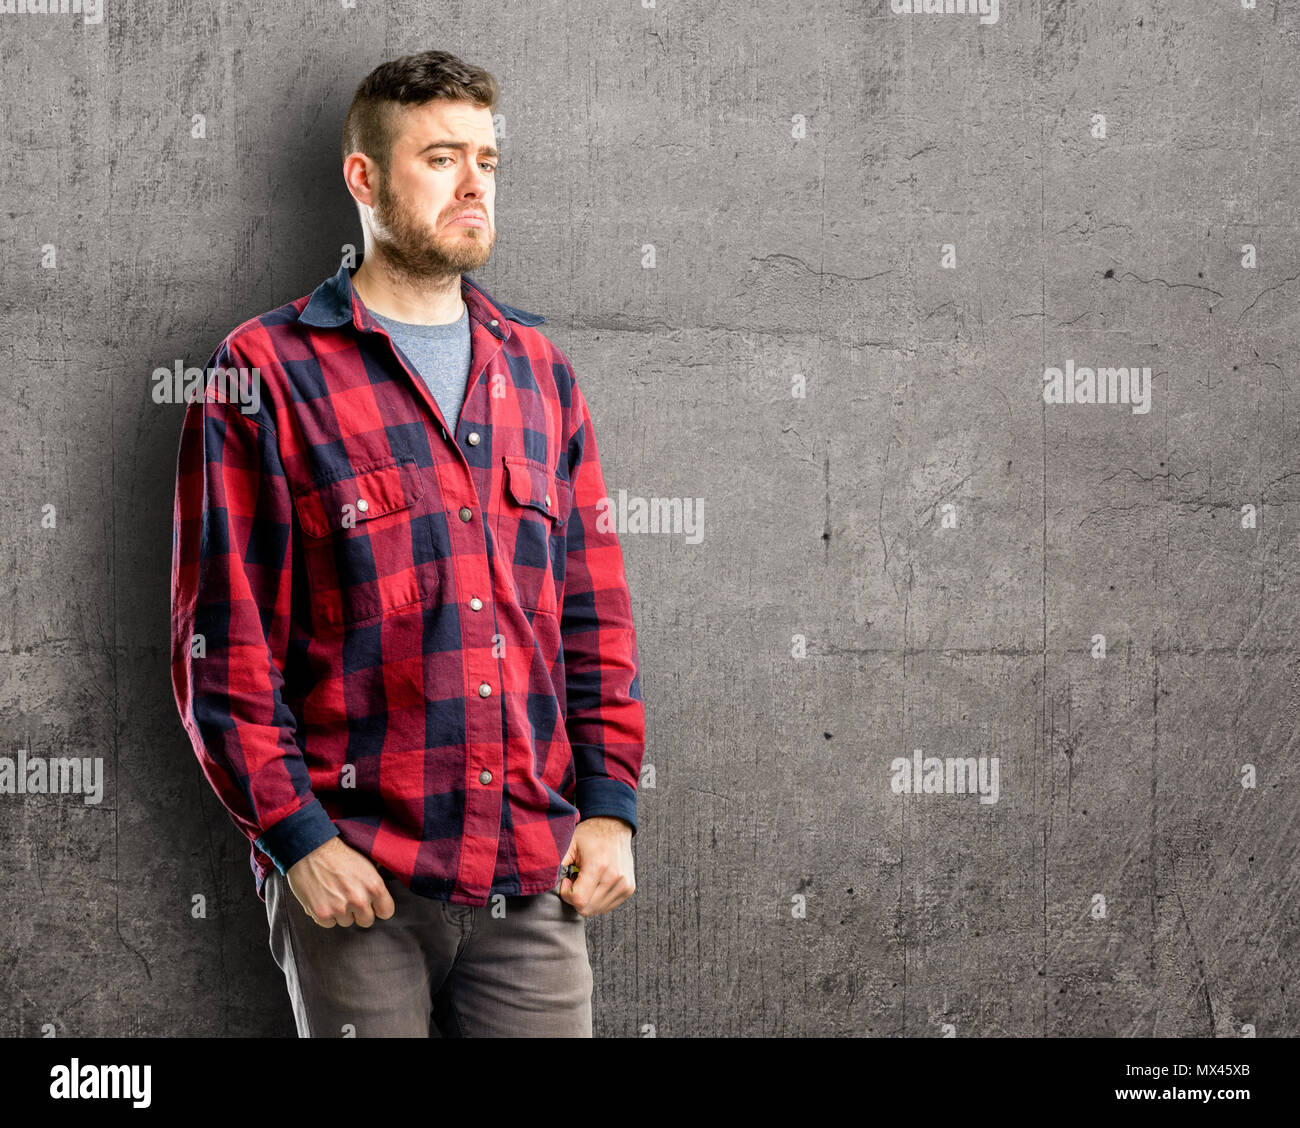 Young handsome man having skeptical and dissatisfied look expressing Distrust, skepticism and doubt - Stock Image